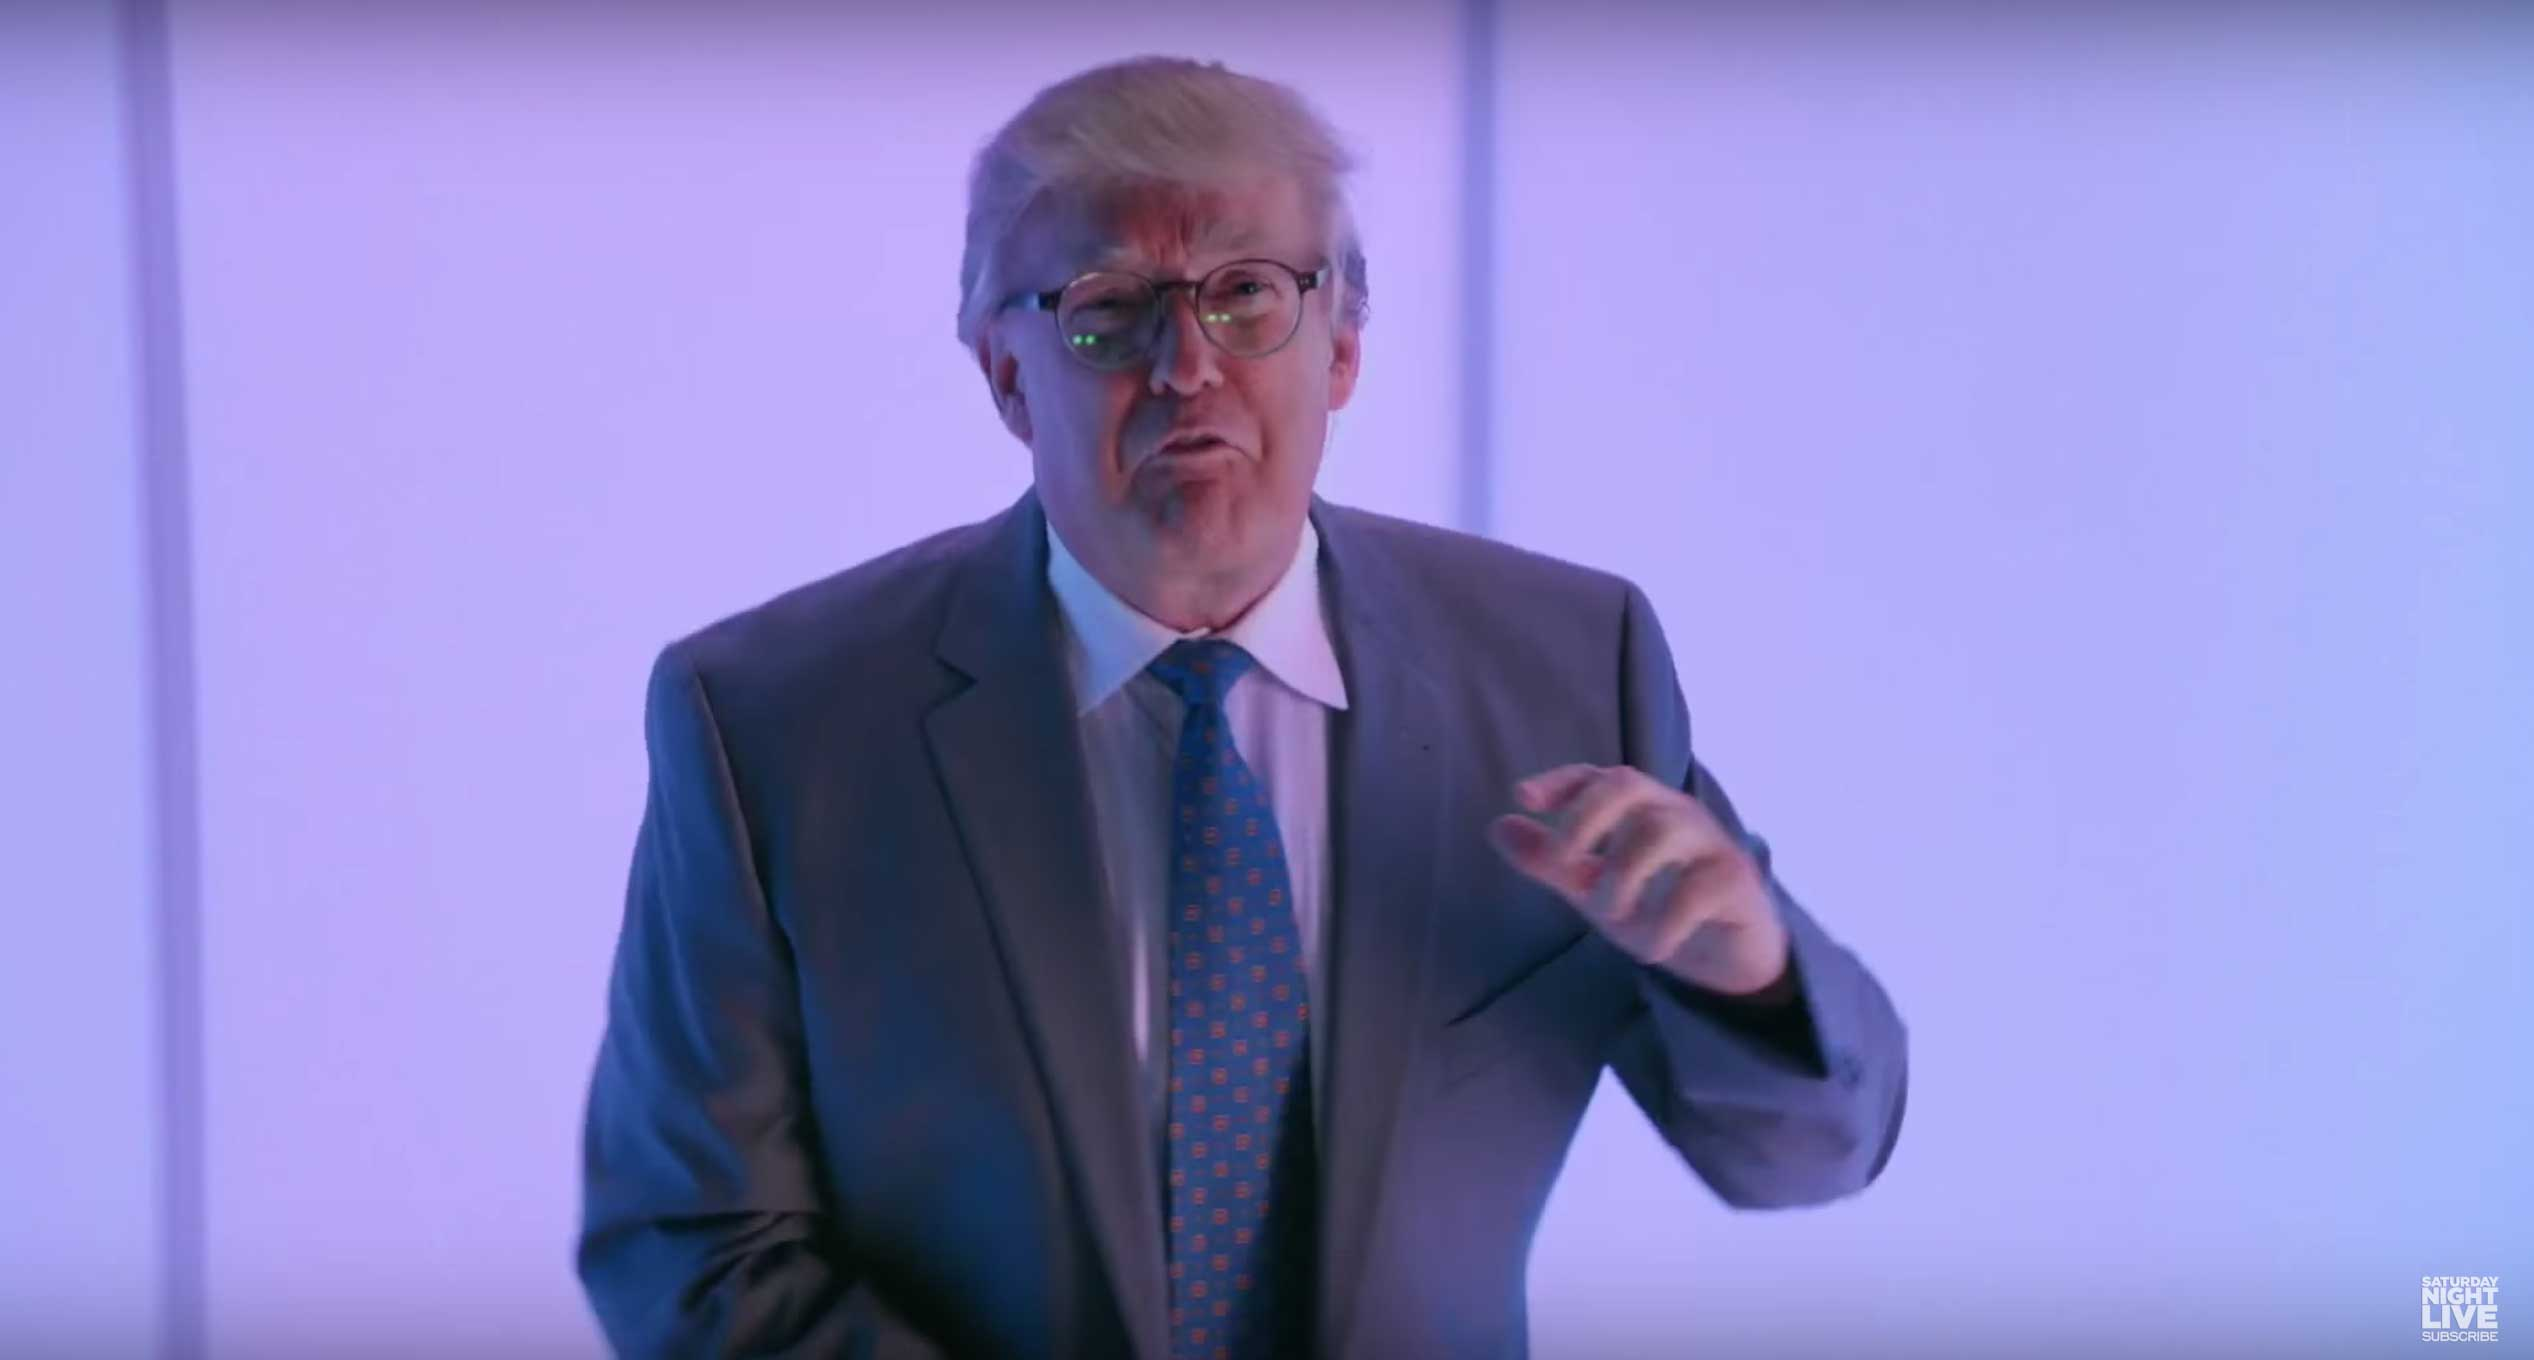 donald trump hosted saturday night live last night giving the show its ...